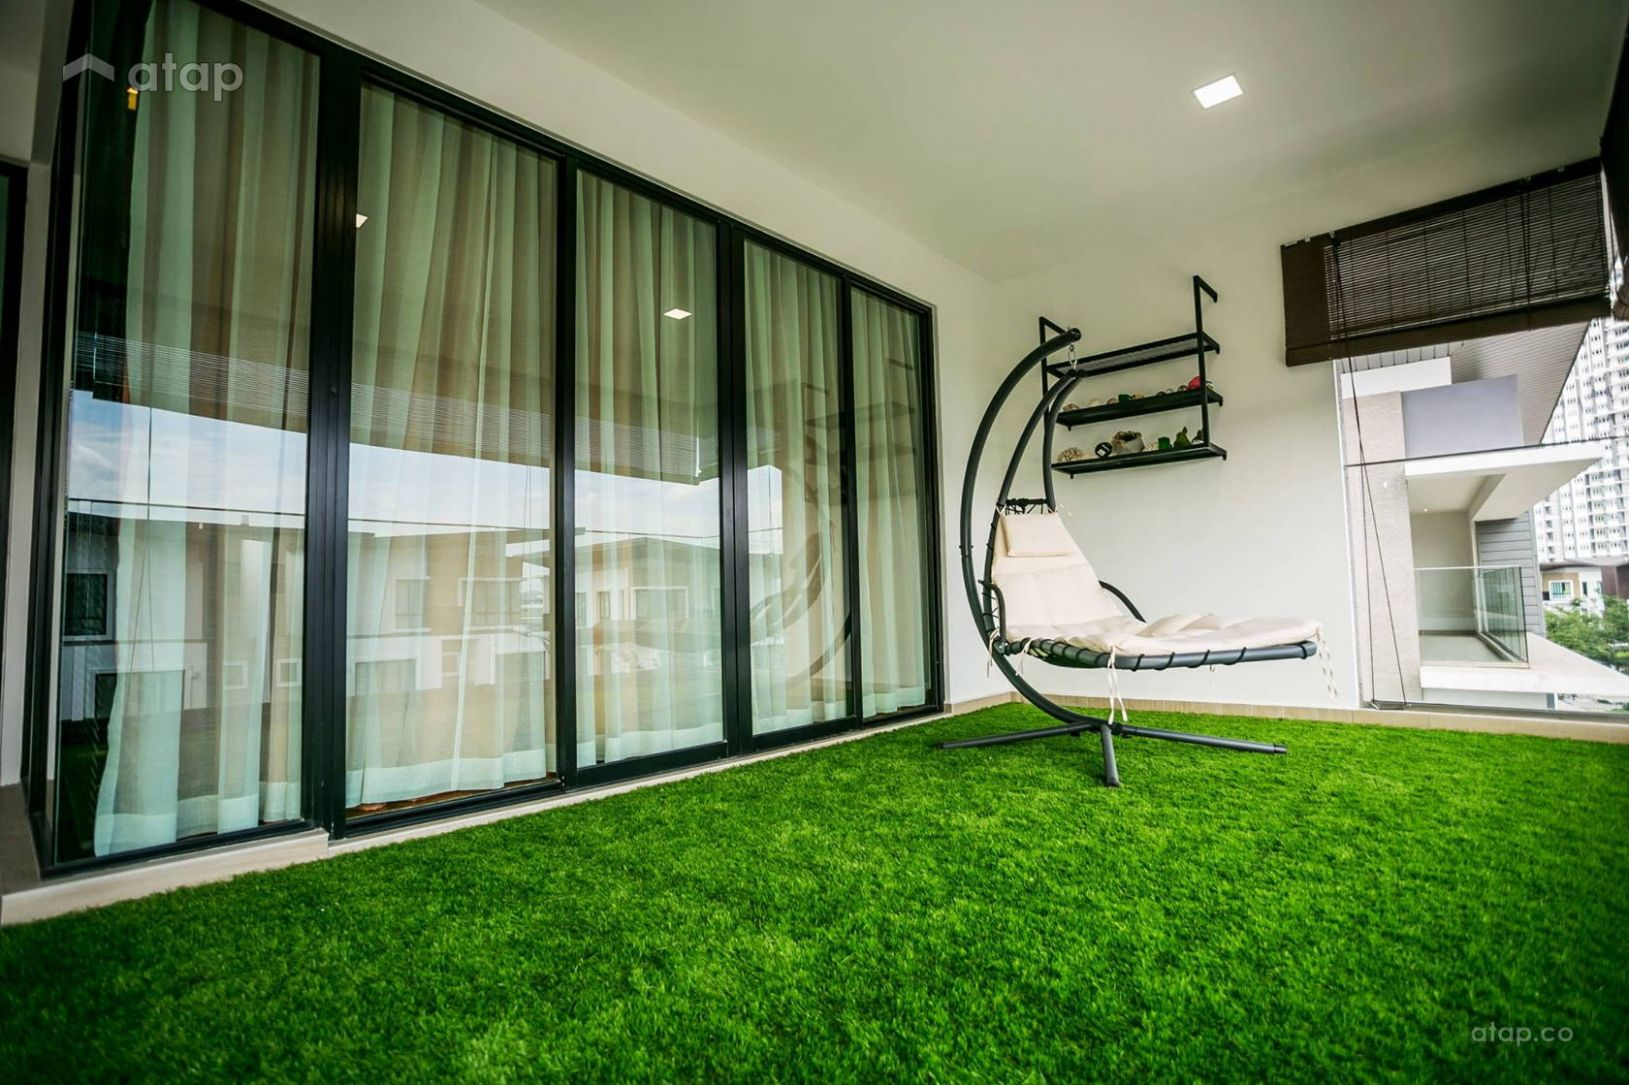 Malaysian Balcony Designs That are Perfect for Gardening | Atap.co